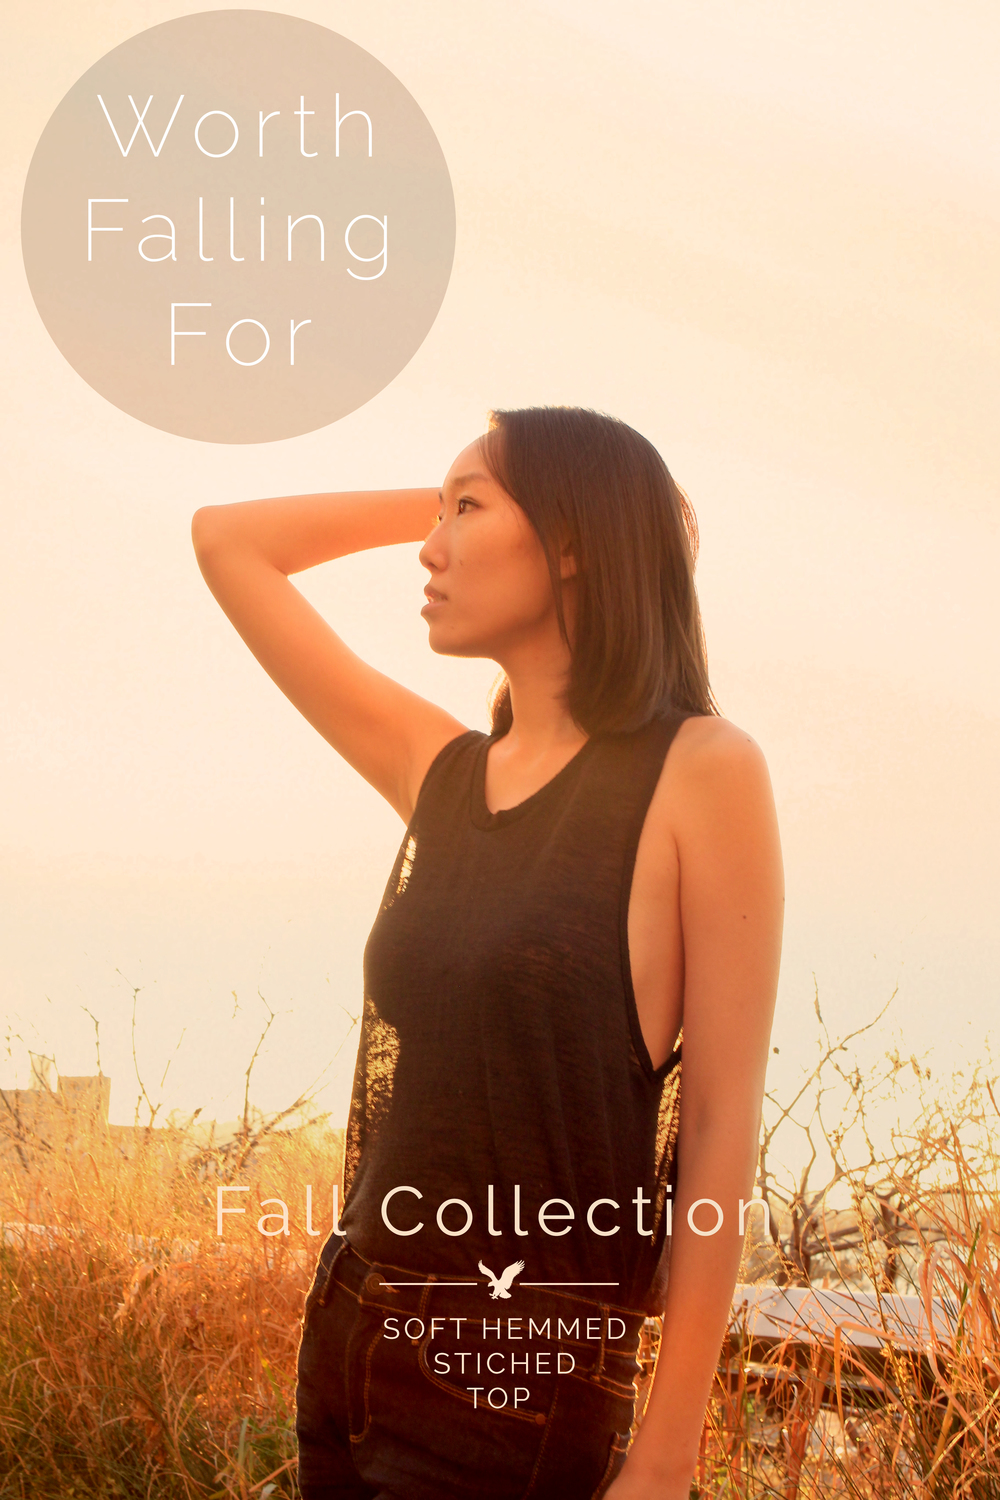 Ilin Chung Photography - Grace Yang - American Eagle Mockup-Ad Worth Falling For Fall Collection.jpg